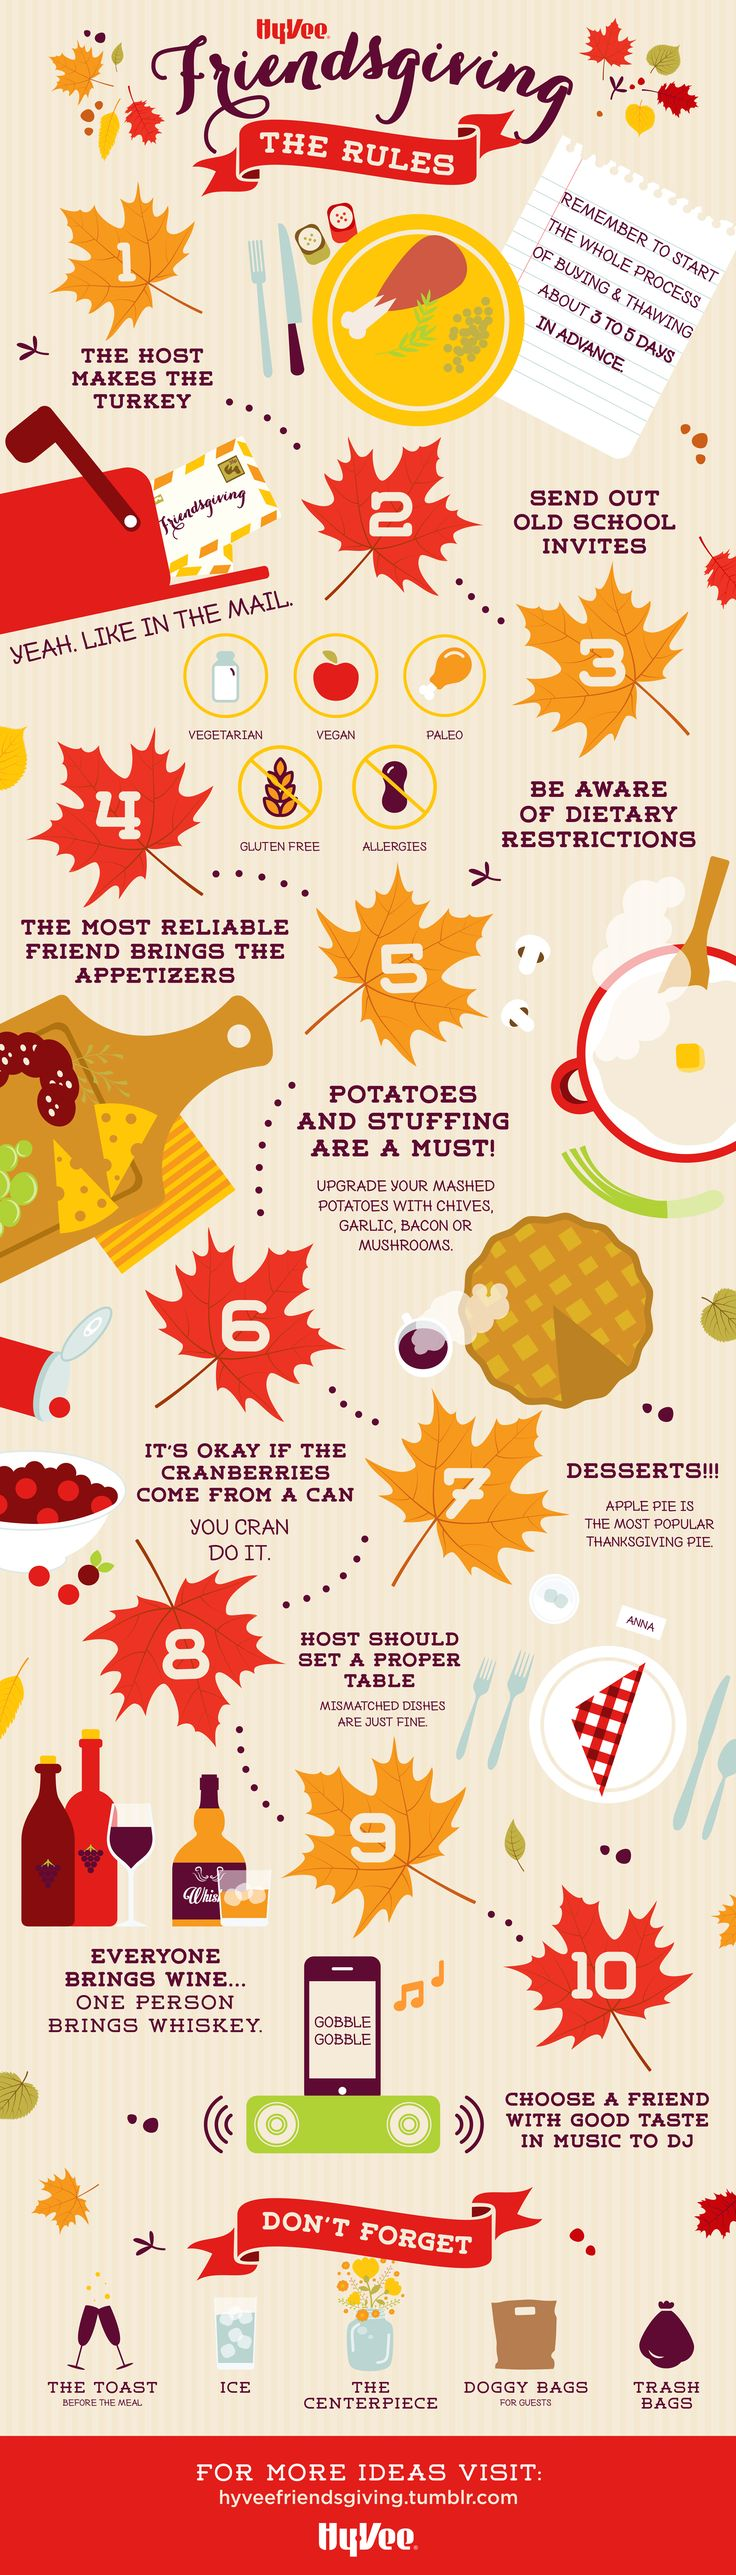 Follow these 10 rules for a perfect #Friendsgiving!